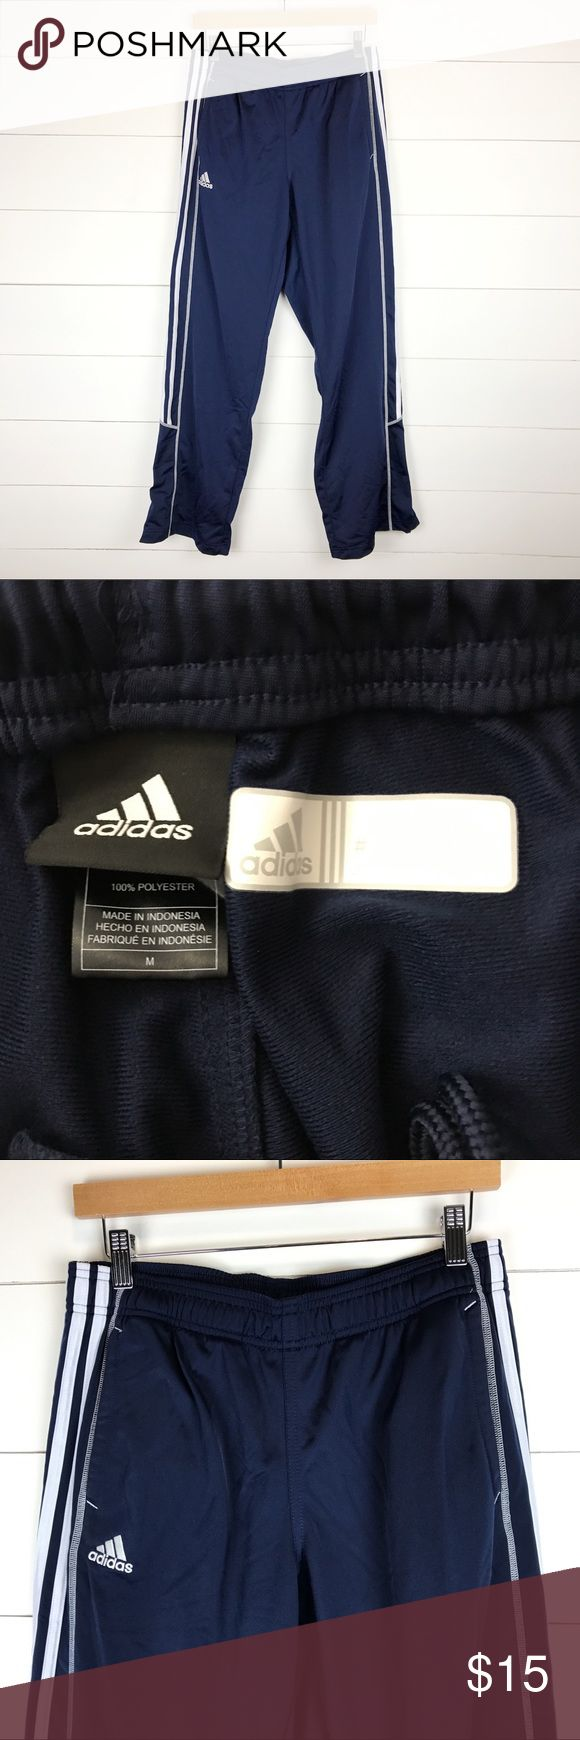 "Adidas Youth M Navy Blue White Zip Ankle Pants Awesome pair of adidas youth size medium pants.  Navy blue with white stripes and logo.  Zip up ankles and pockets.  MEASUREMENTS  Waist 26""  Inseam 32""  Rise 11""  B1 adidas Bottoms Sweatpants & Joggers"